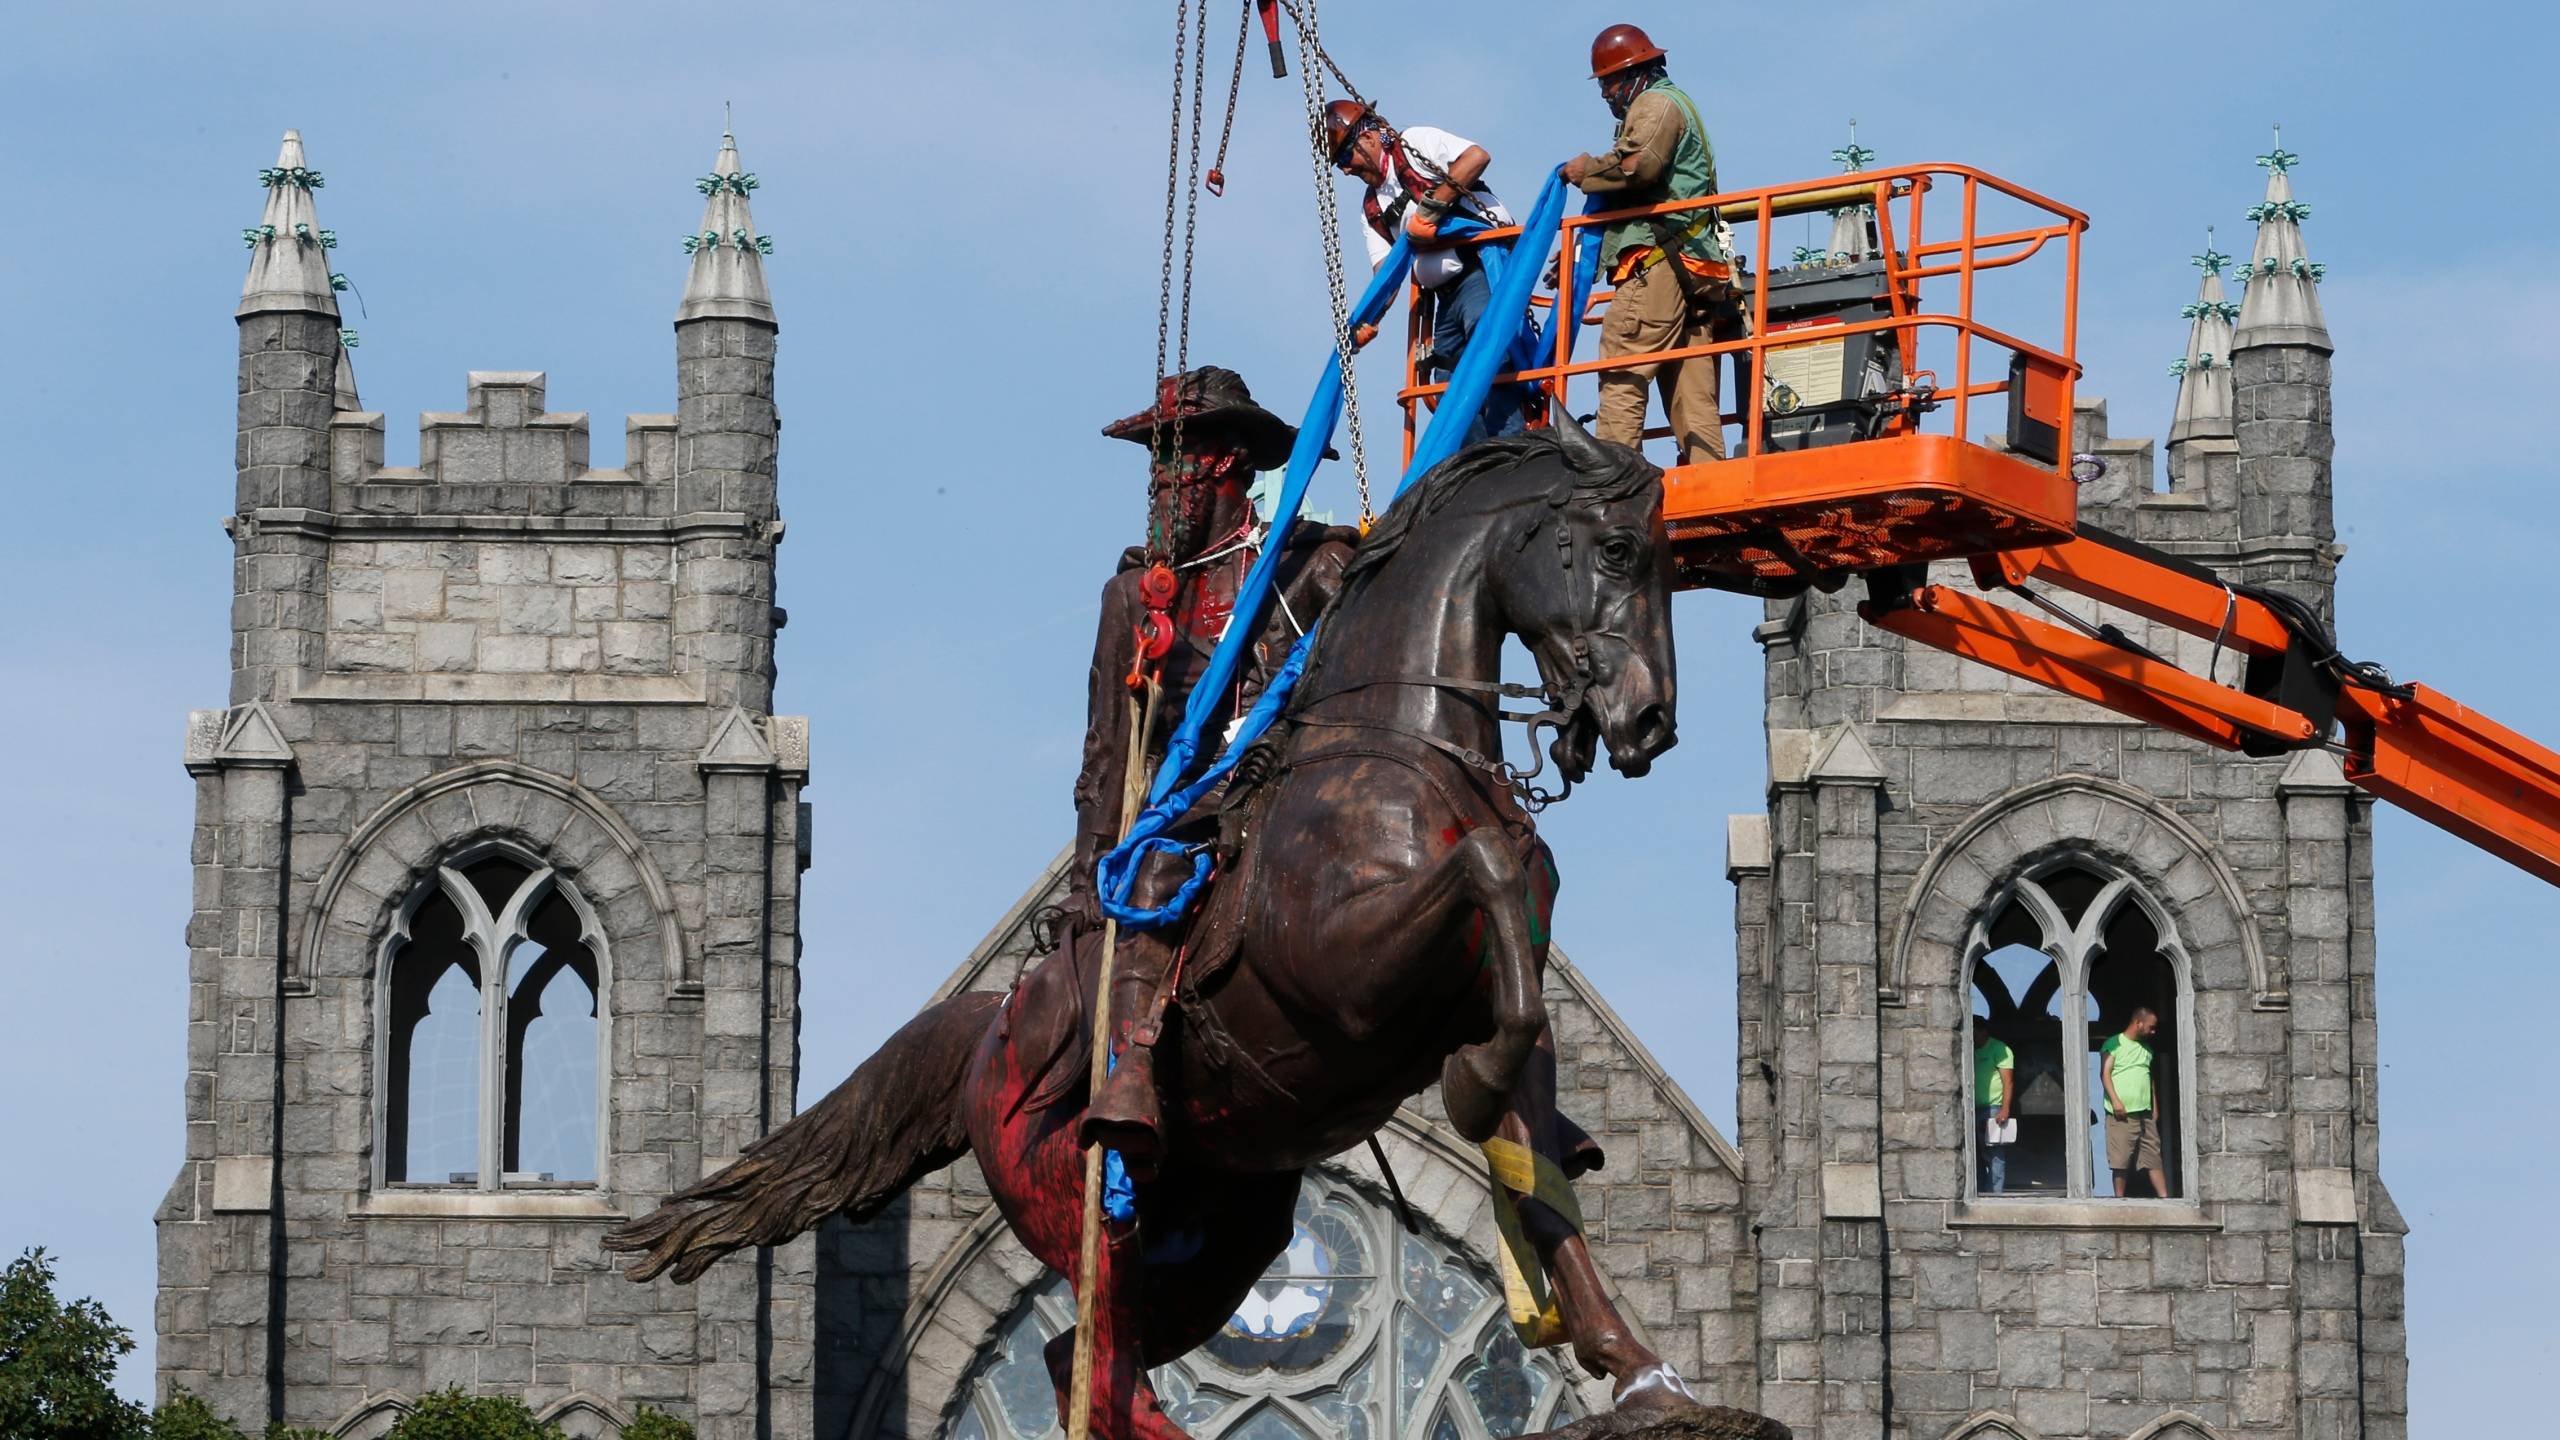 In this July 7, 2020, file photo, crews attach straps to the statue Confederate General J.E.B. Stuart on Monument Avenue in Richmond, Va. At least 160 Confederate symbols were taken down or moved from public spaces in 2020. That's according to a new count the Southern Poverty Law Center shared with The Associated Press. (AP Photo/Steve Helber, File)